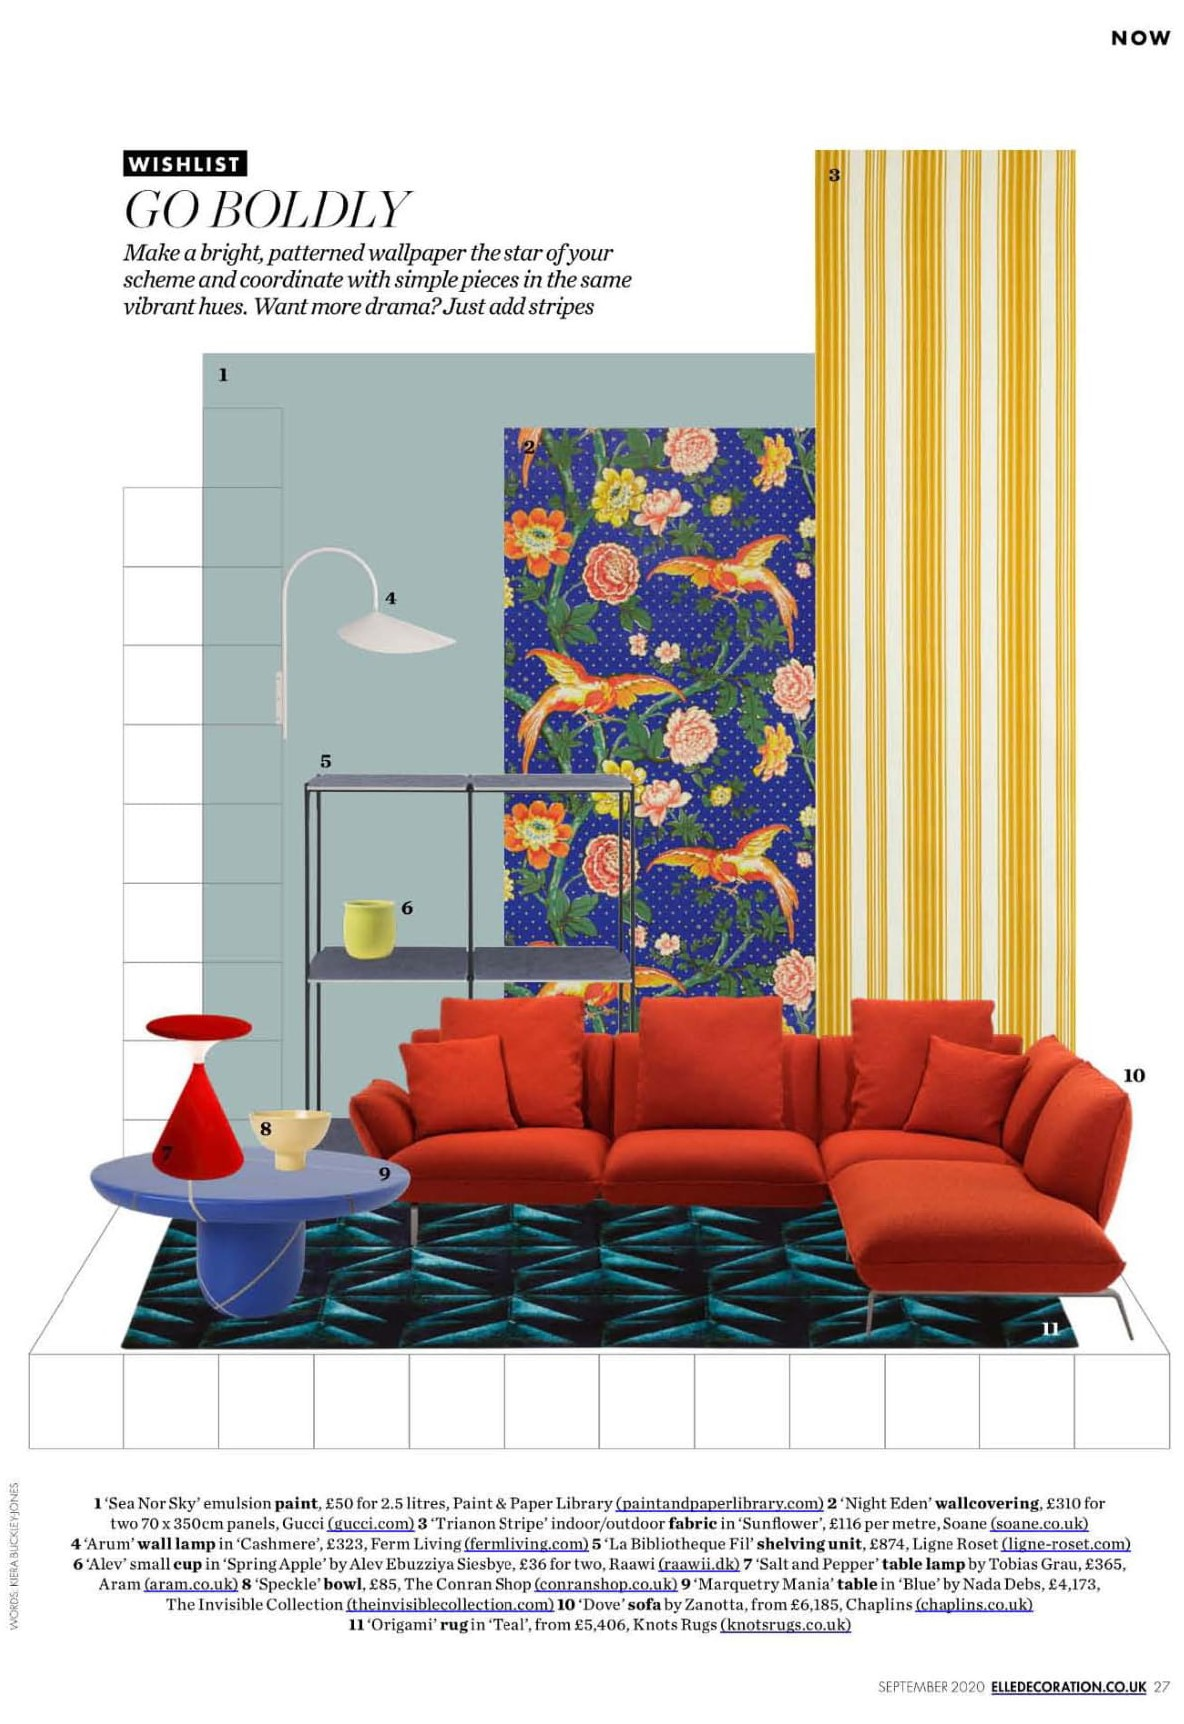 Elle Decoration suggests Ligne Roset's La Bibliotheque Fil as the perfect pairing for a bold wallpaper